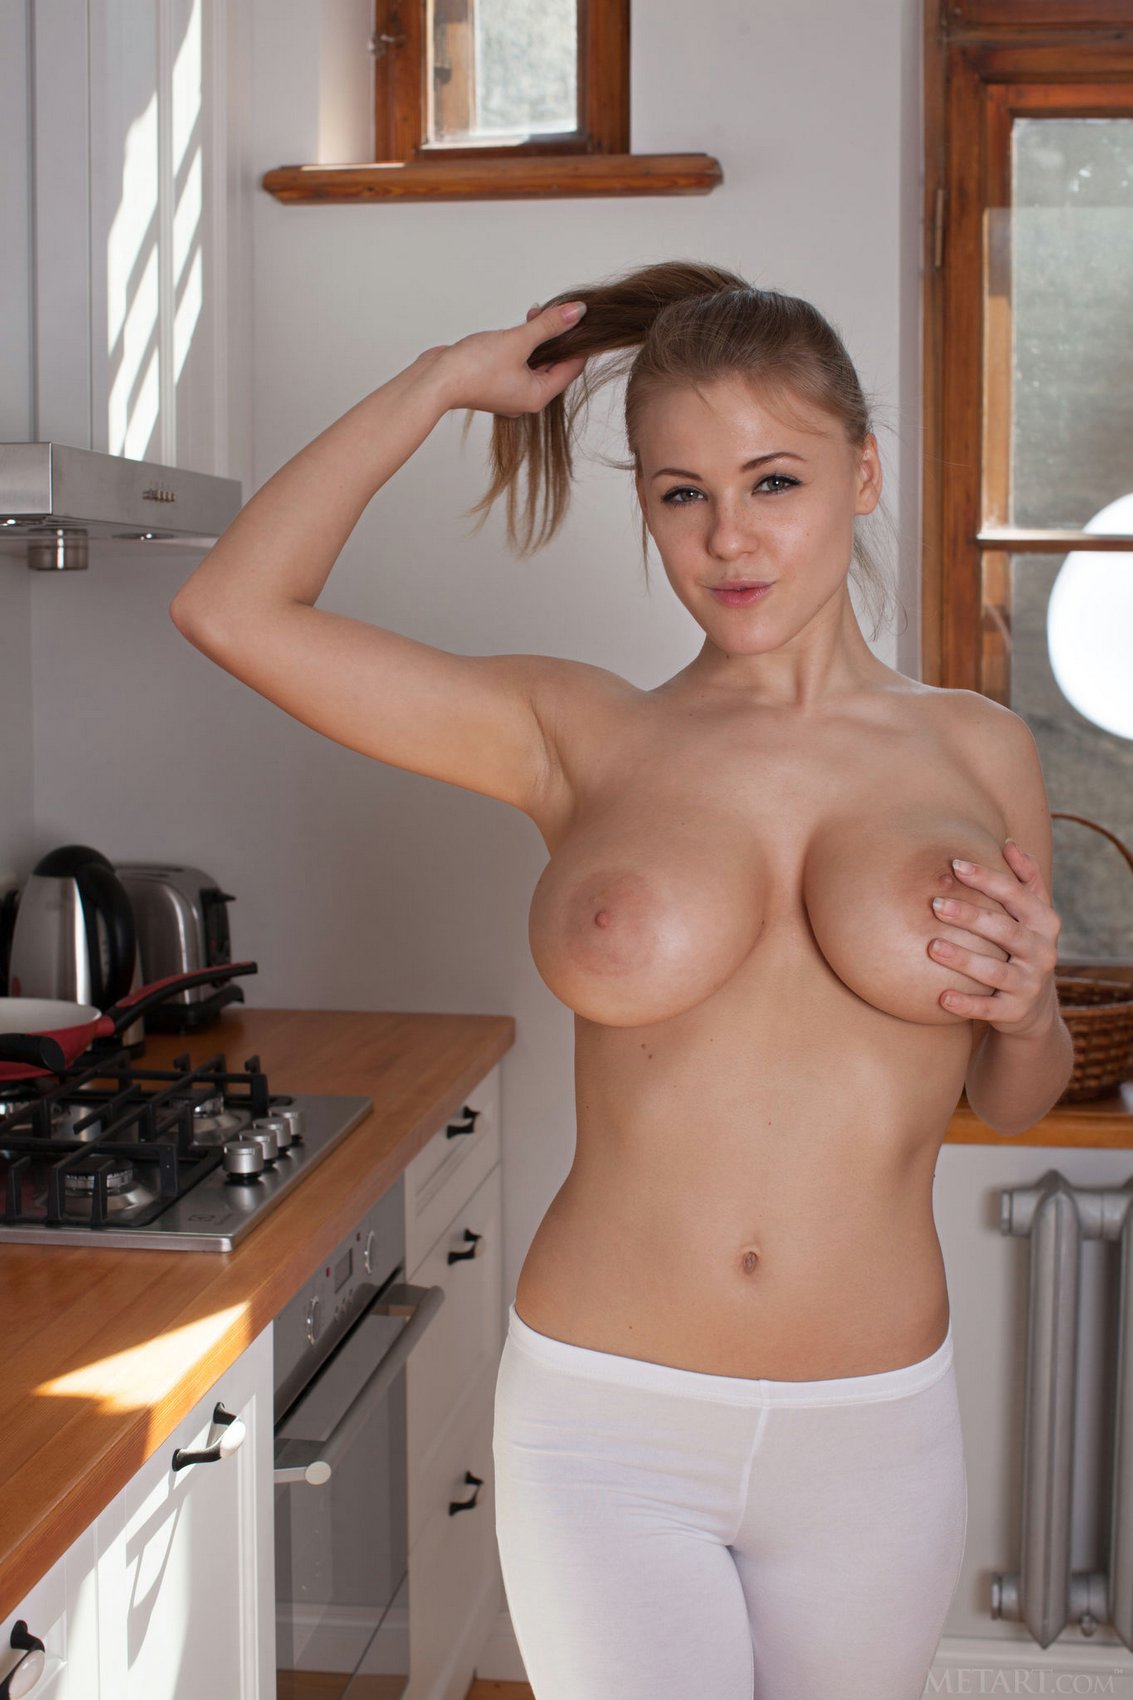 Nude in kitchen pics-3028